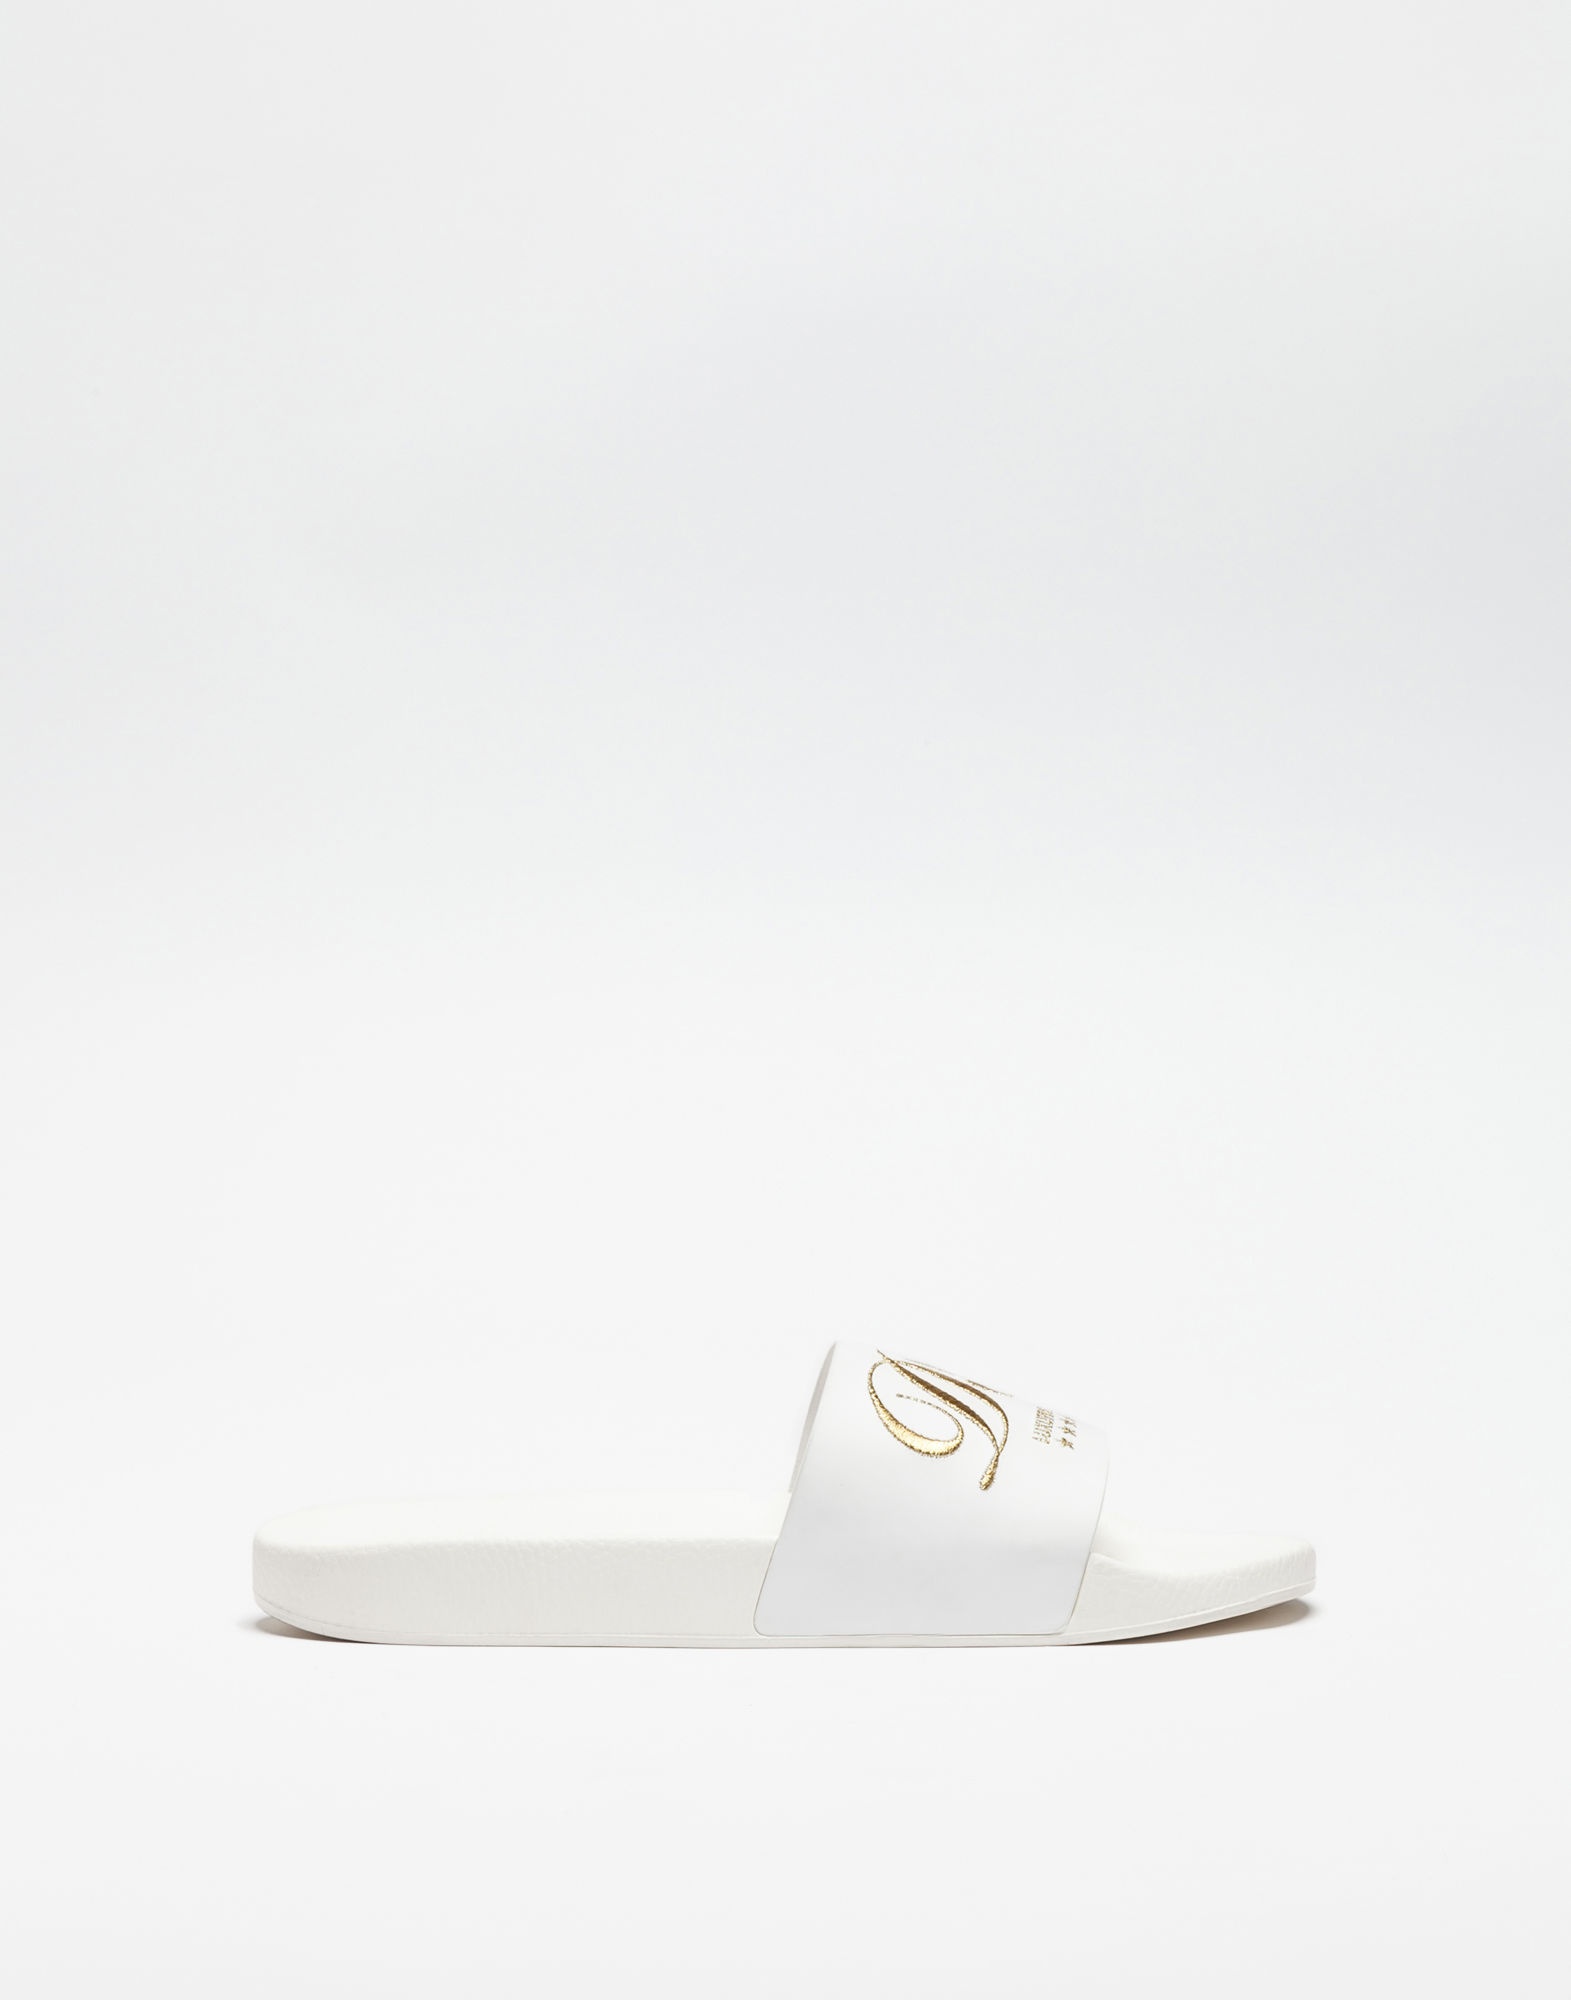 606860b9183 DOLCE   GABBANA DOLCE E GABBANA MEN S WHITE RUBBER SANDALS